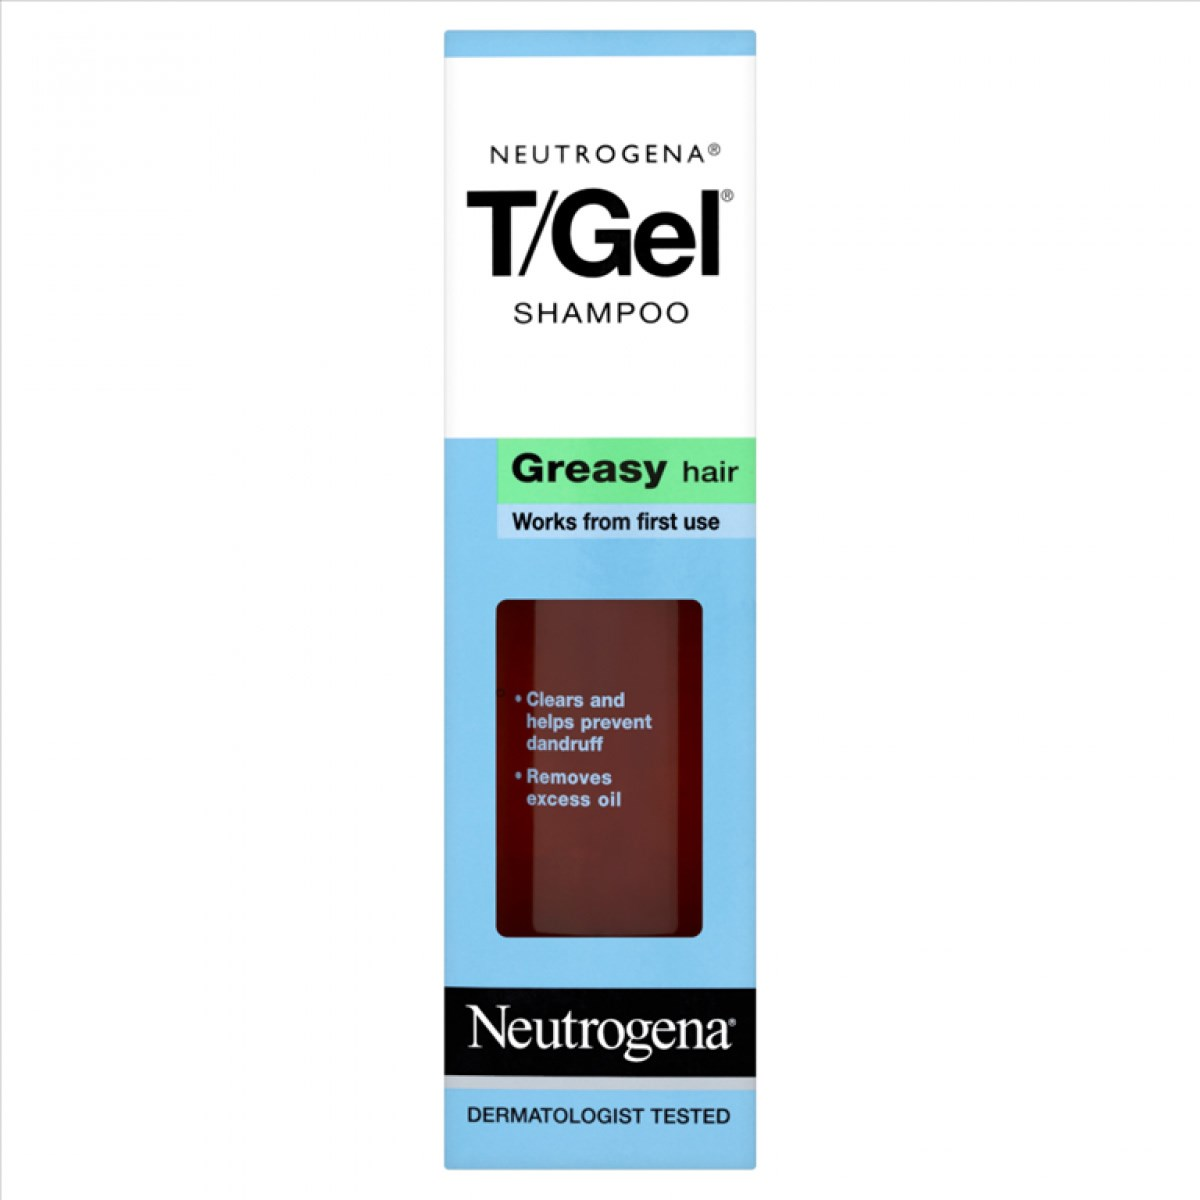 Neutrogena T-Gel Anti-Dandruff Shampoo for Normal/Greasy